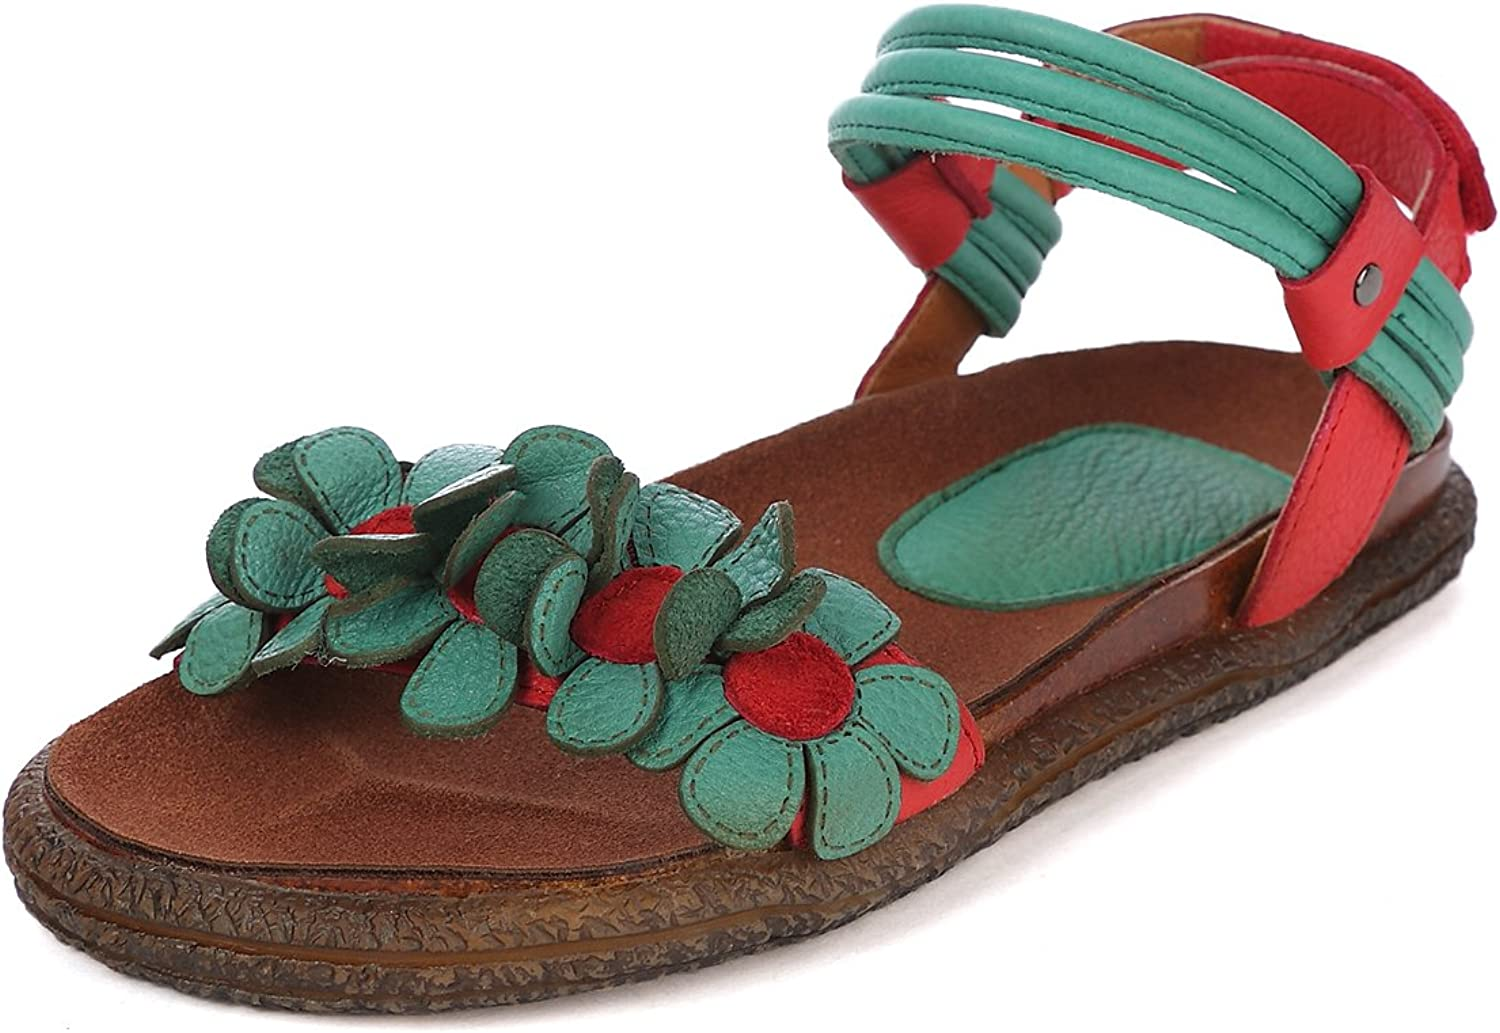 Dwarves Handmade Summer shoes for Women with Flower,Flat Casual shoes Open Toe Leather Strappy Sandals Green